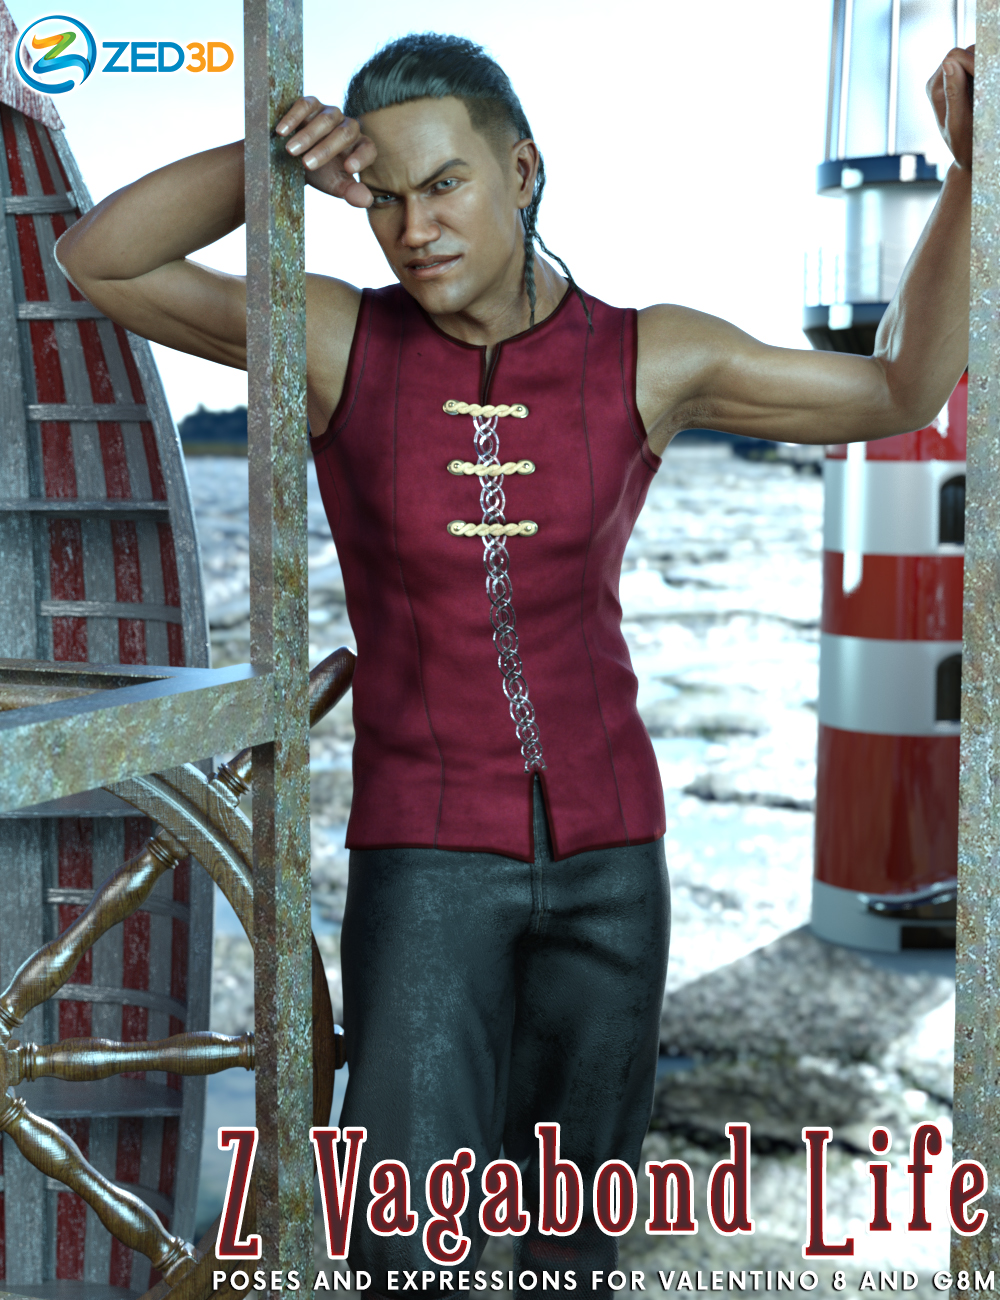 Z Vagabond Life Poses and Expressions for Valentino 8 by: Zeddicuss, 3D Models by Daz 3D